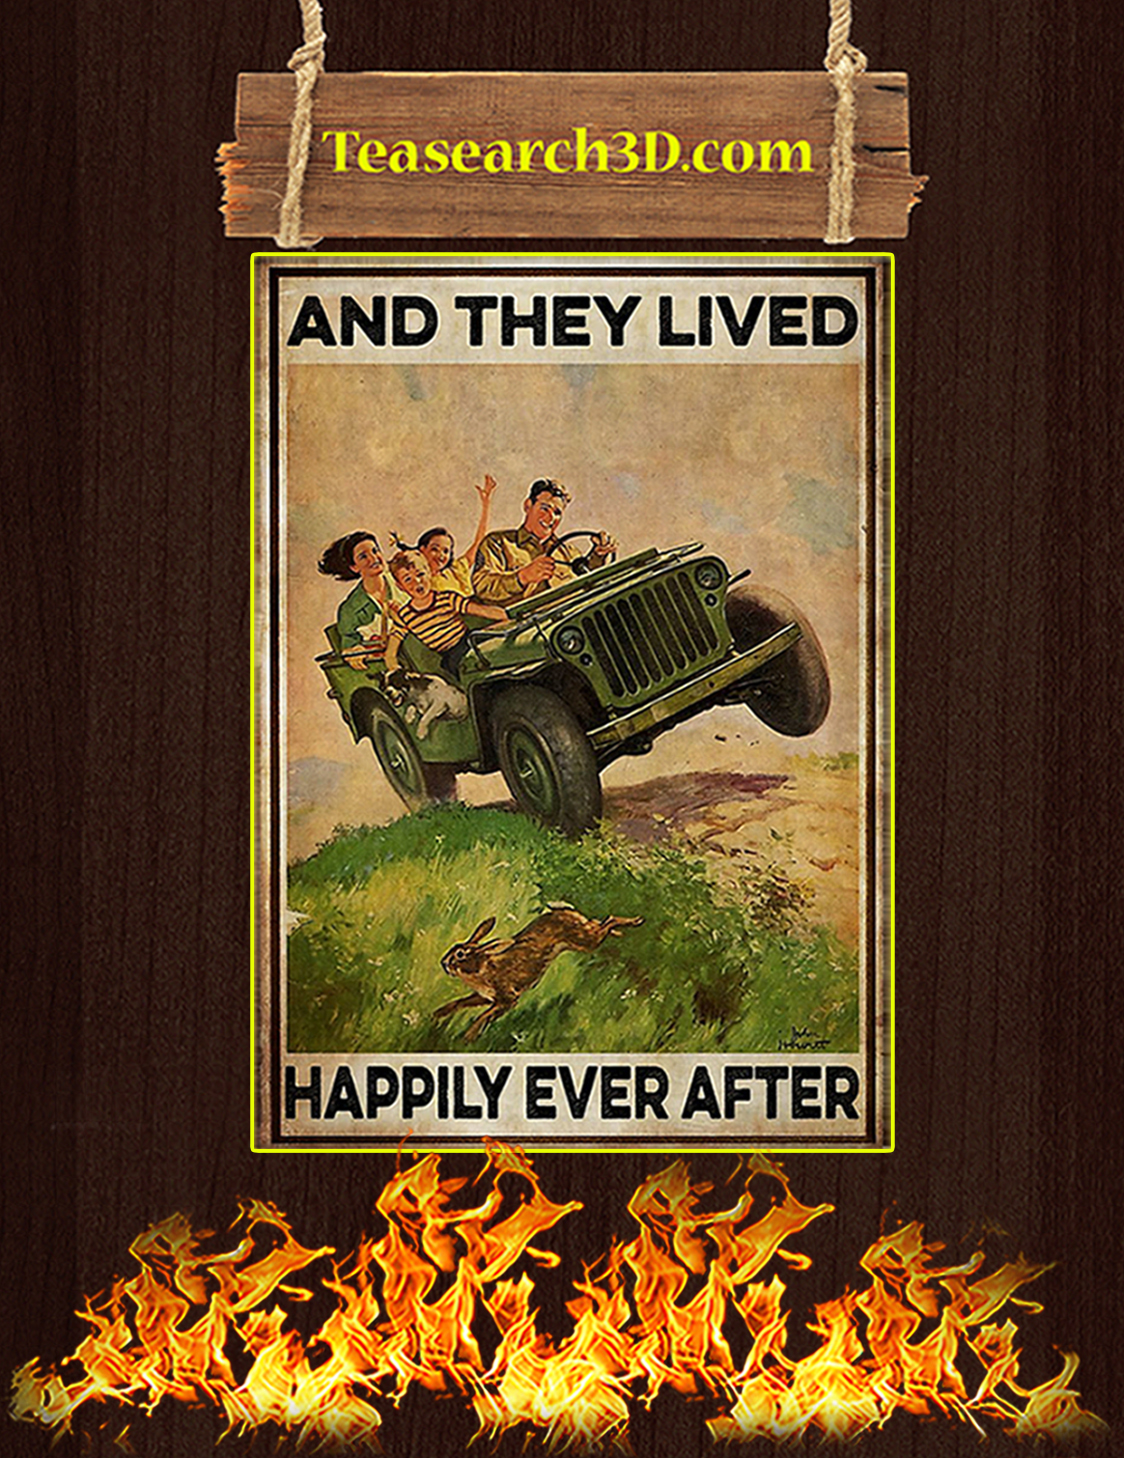 Jeep and they lived happily ever after poster A3